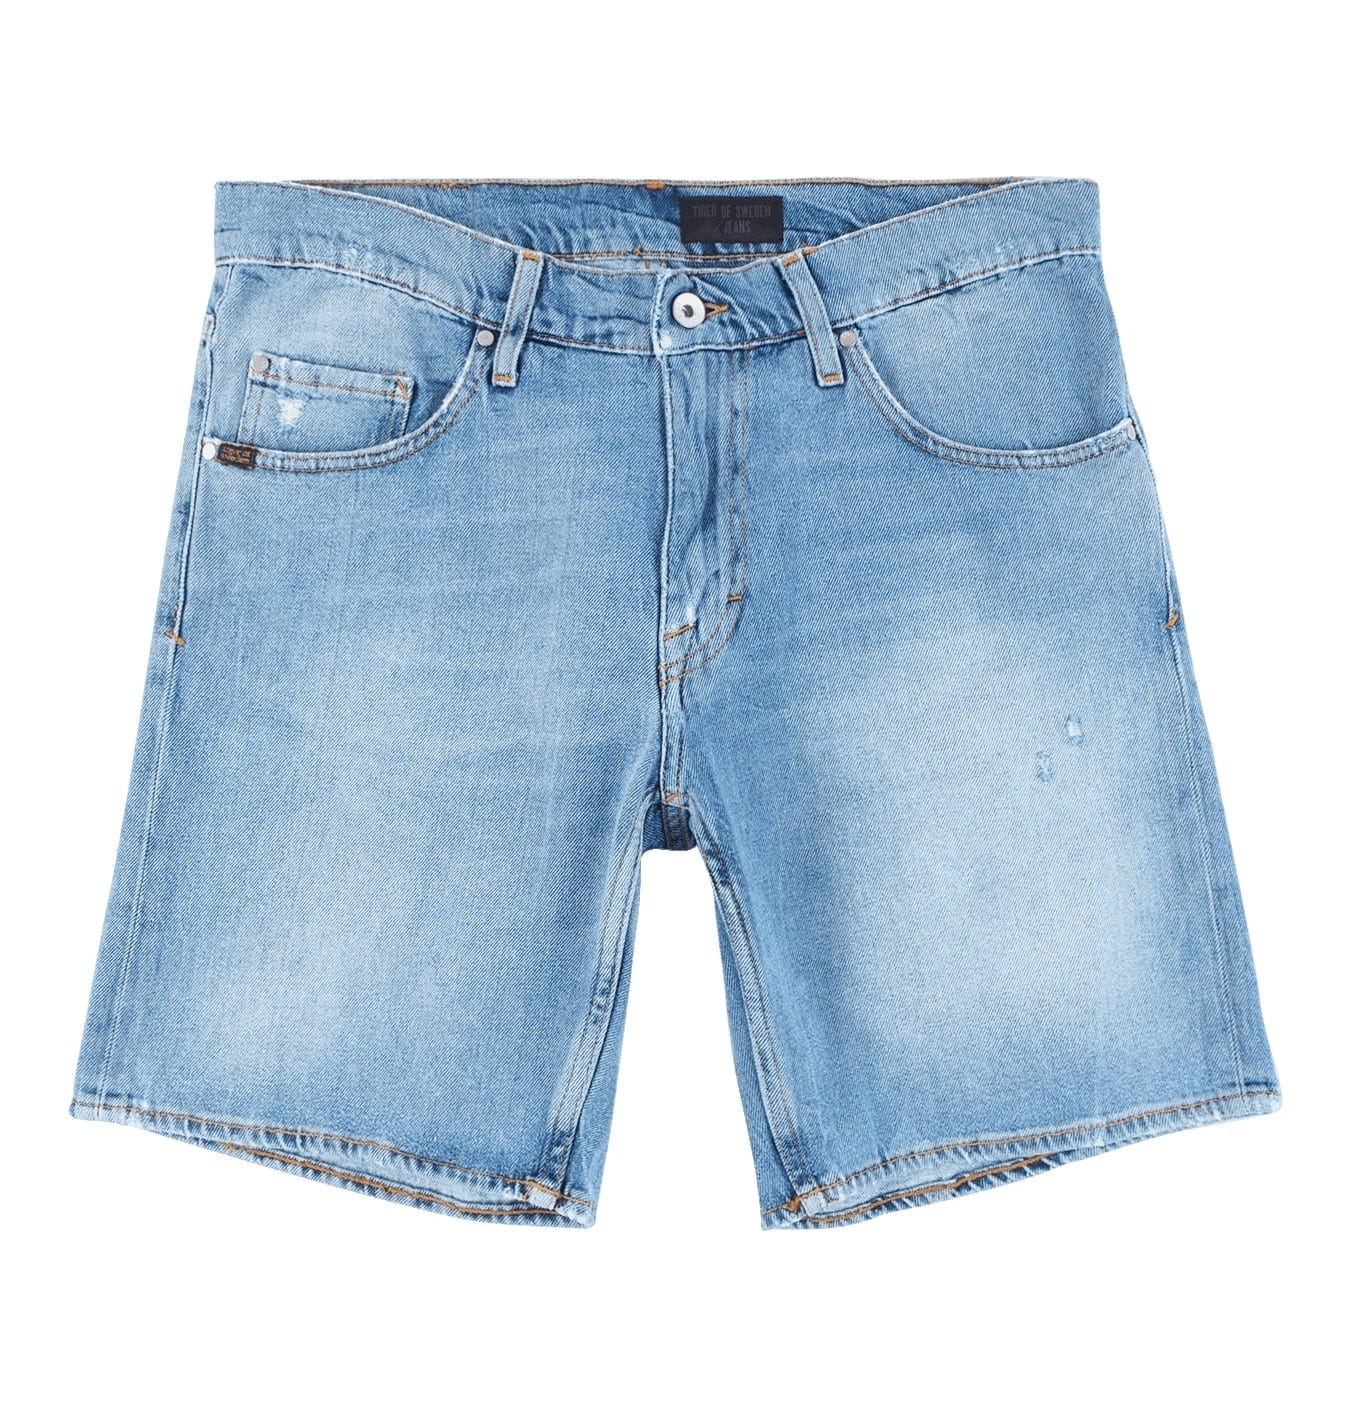 Image of   Angus Trooper Shorts